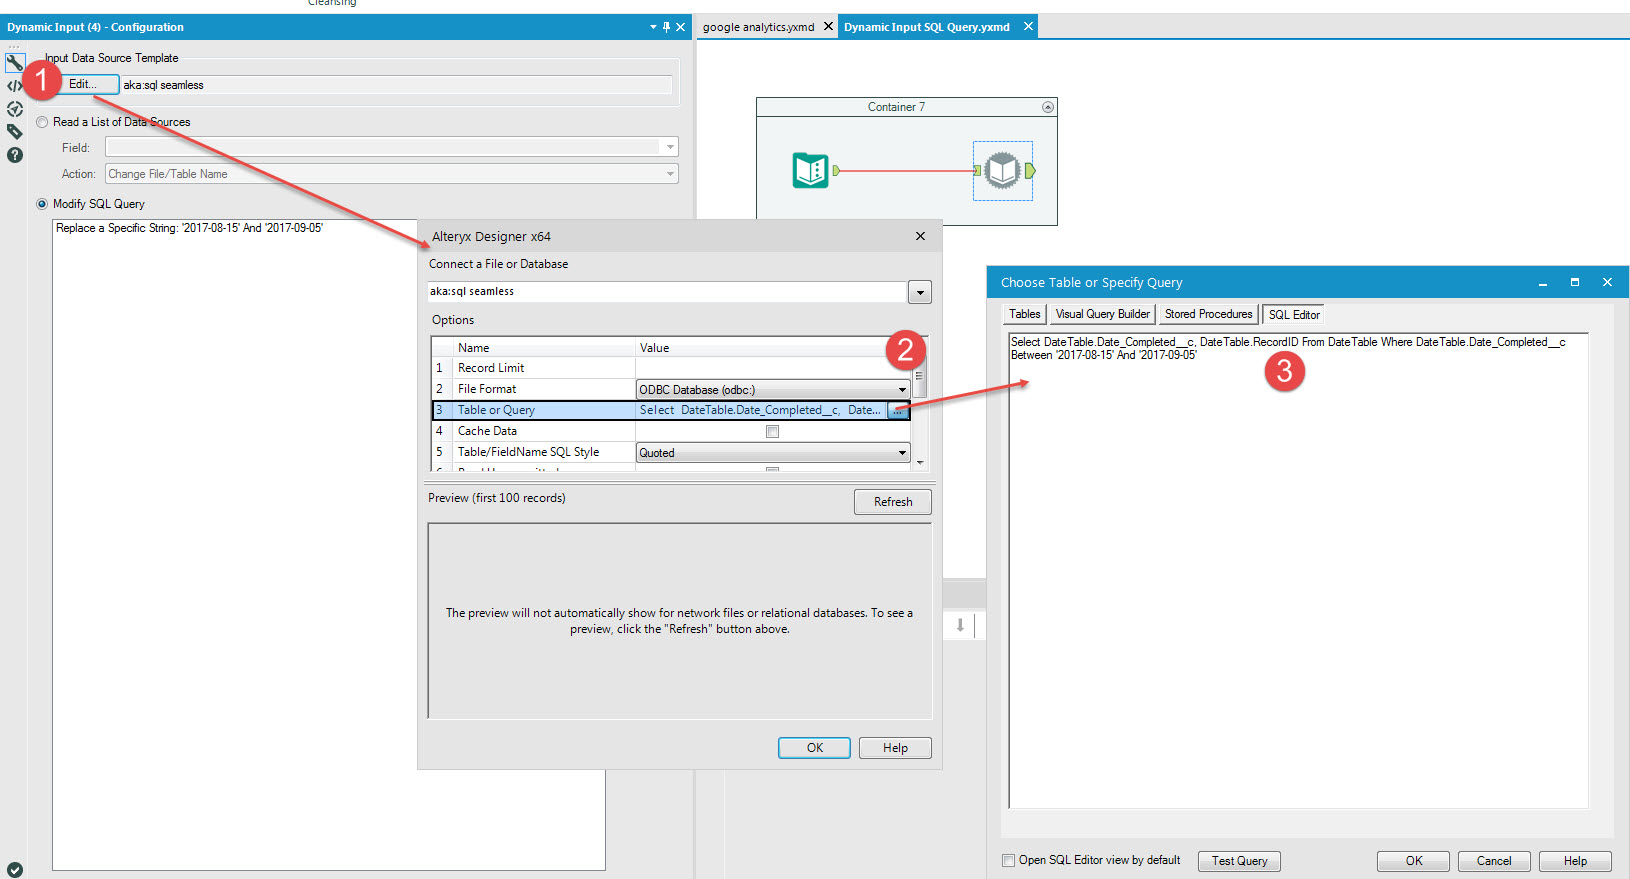 Solved: Interative Dynamic SQL Where Statement - Alteryx